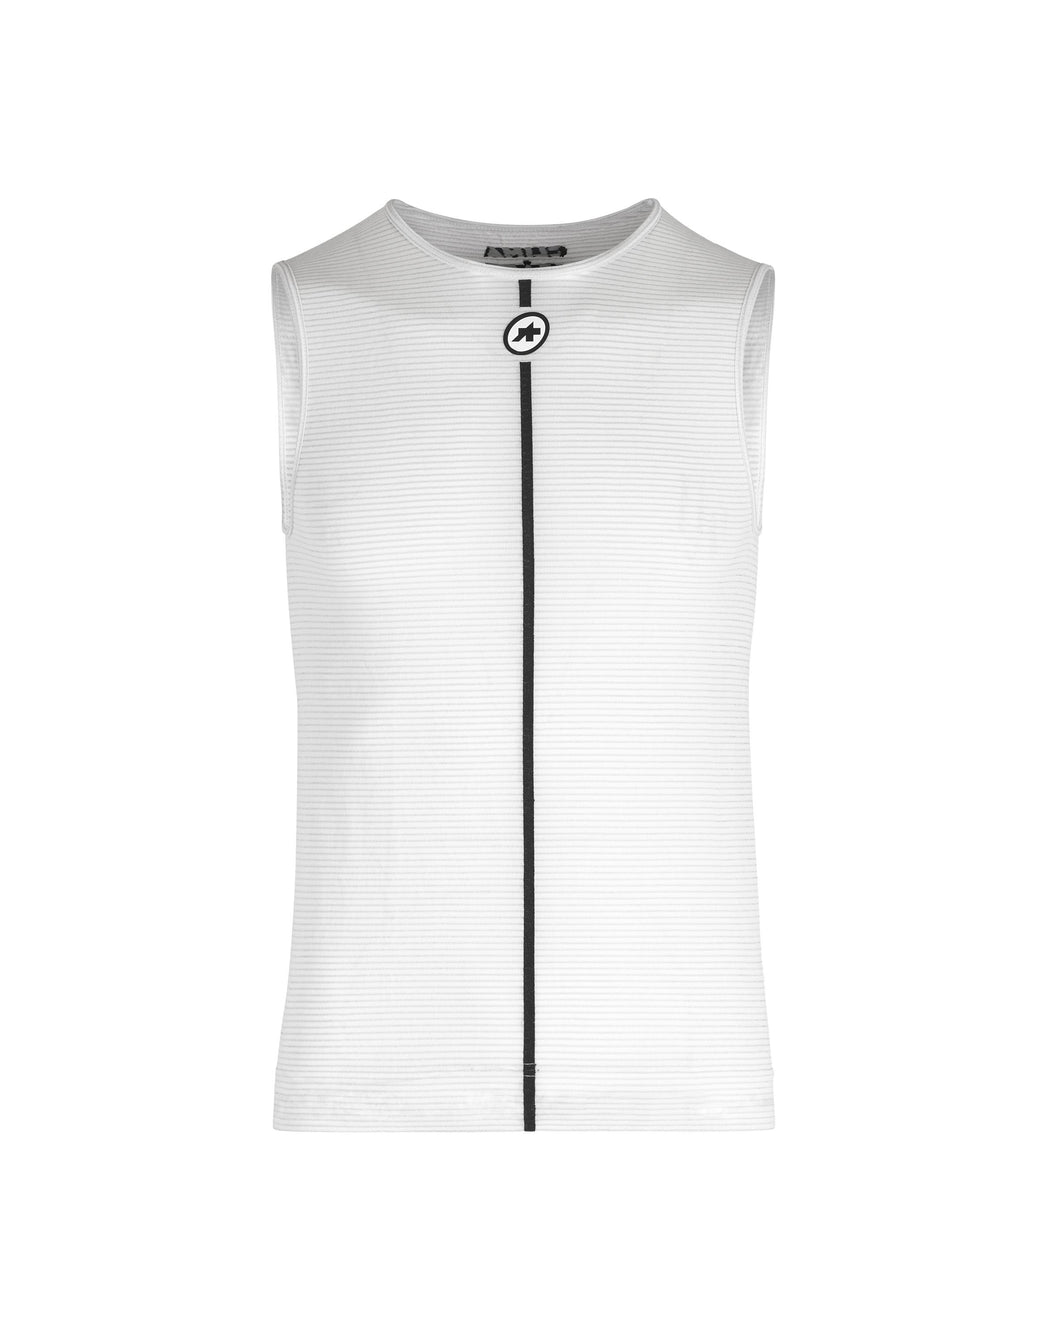 Assos Base Layer no sleeve